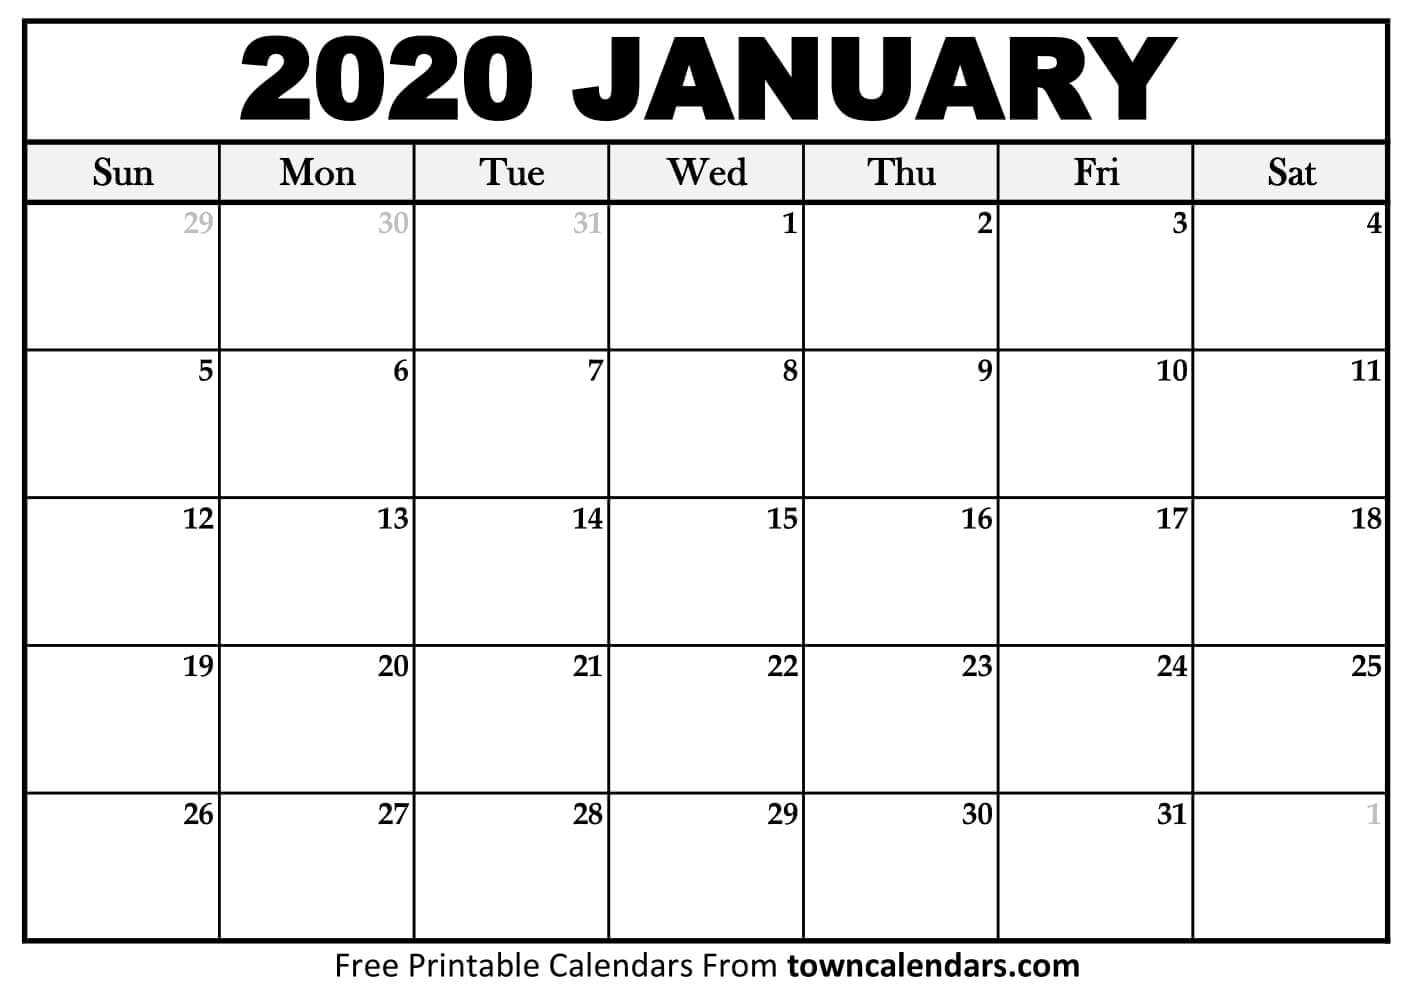 2020 Calendar Printable  Towncalendars pertaining to 123 Calendar January 2020